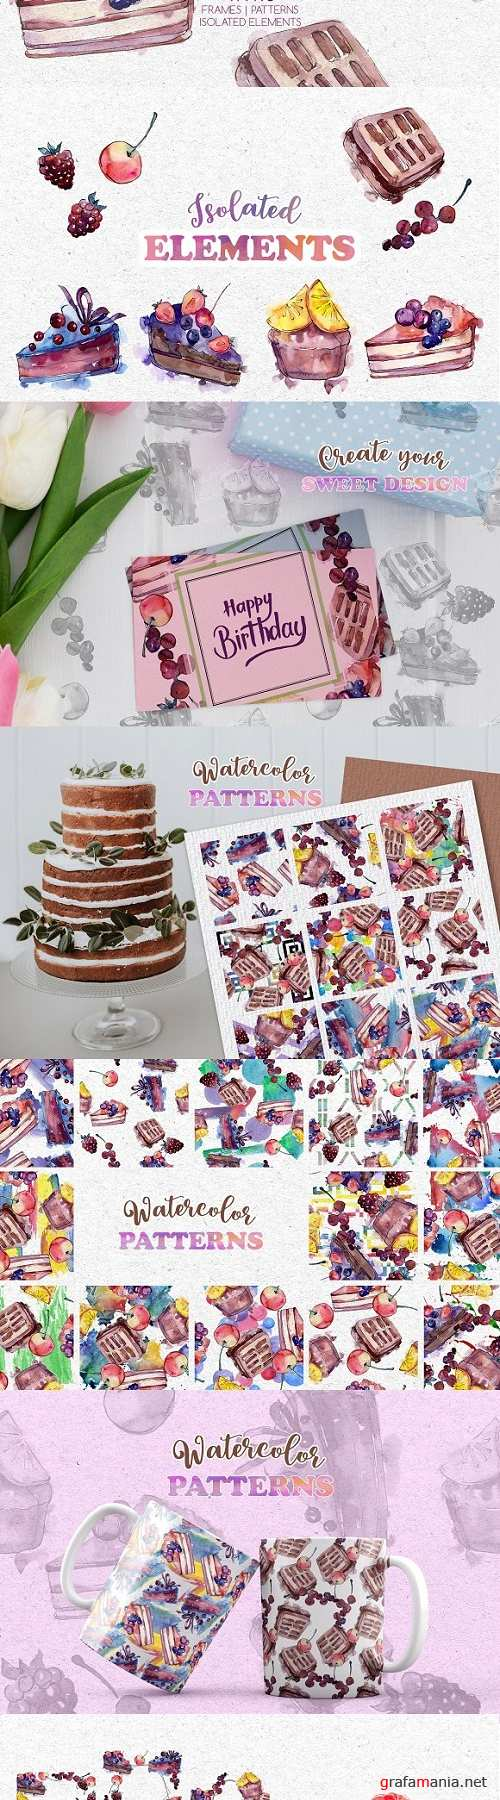 Tasty cakes Watercolor png - 3522468